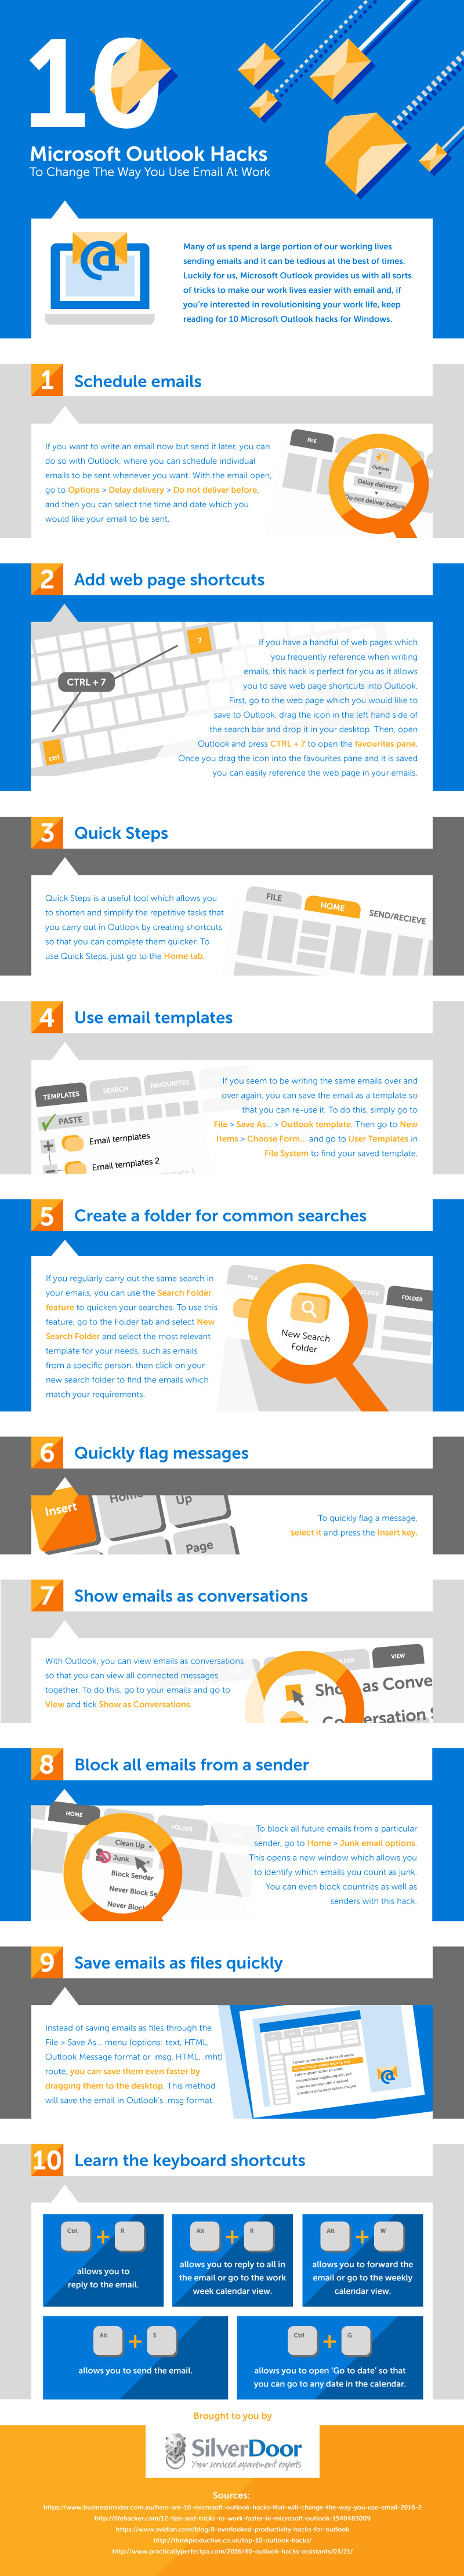 10 Amazing Hacks to Optimize How You Use Microsoft Outlook Email at Work - Infographic